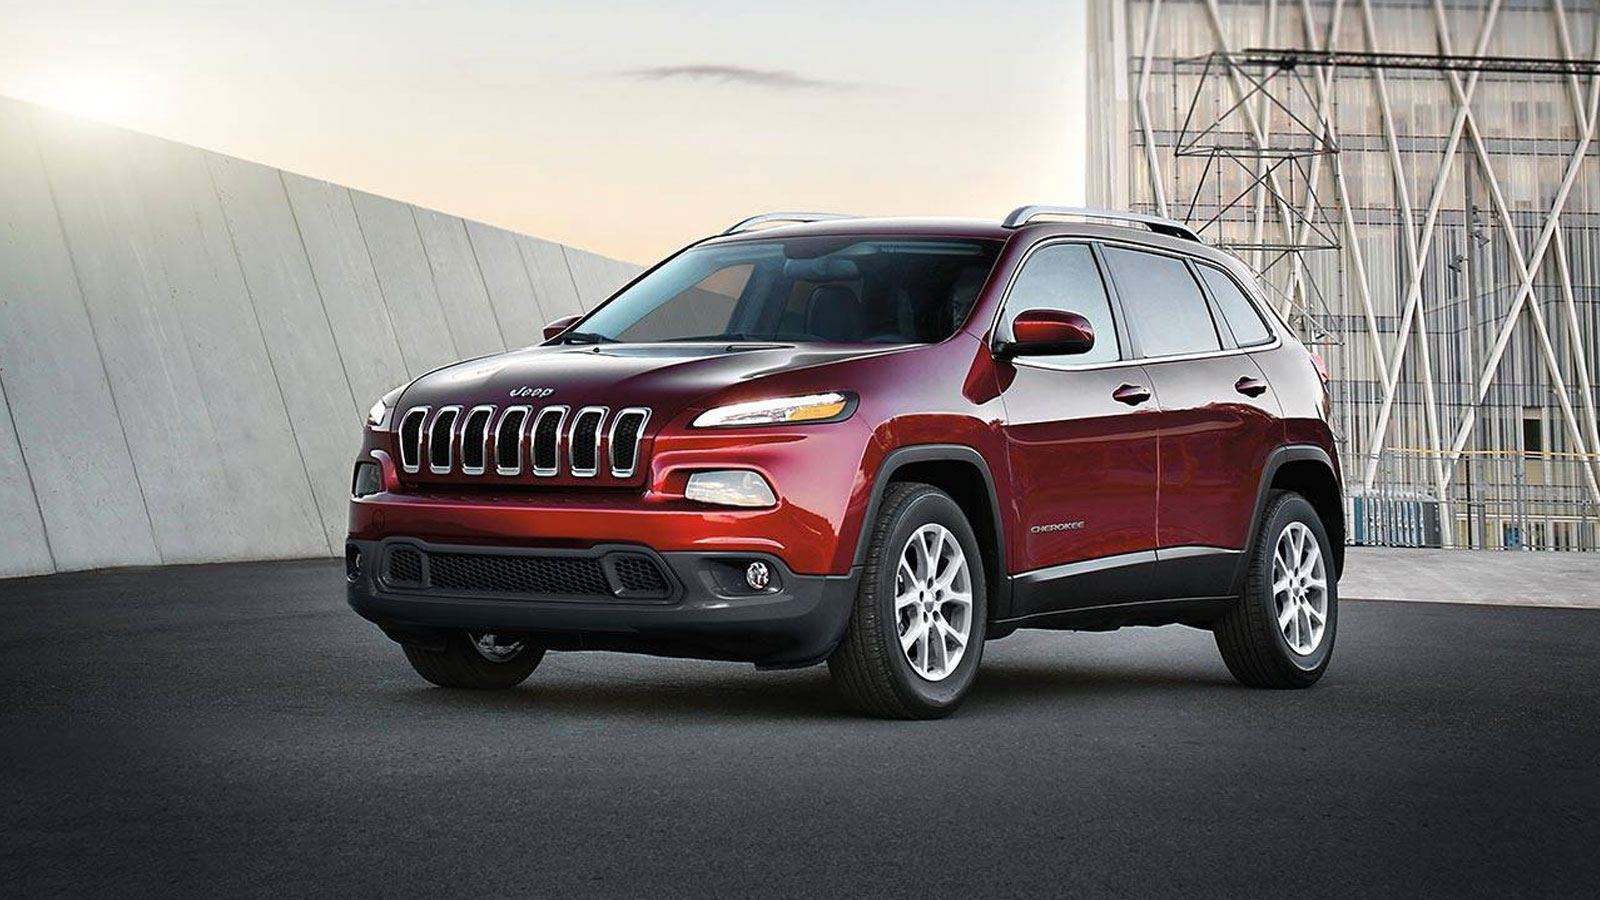 2016 Jeep Cherokee For Sale In Calabasas Also Serving Thousand Oaks In The Los  Angeles County